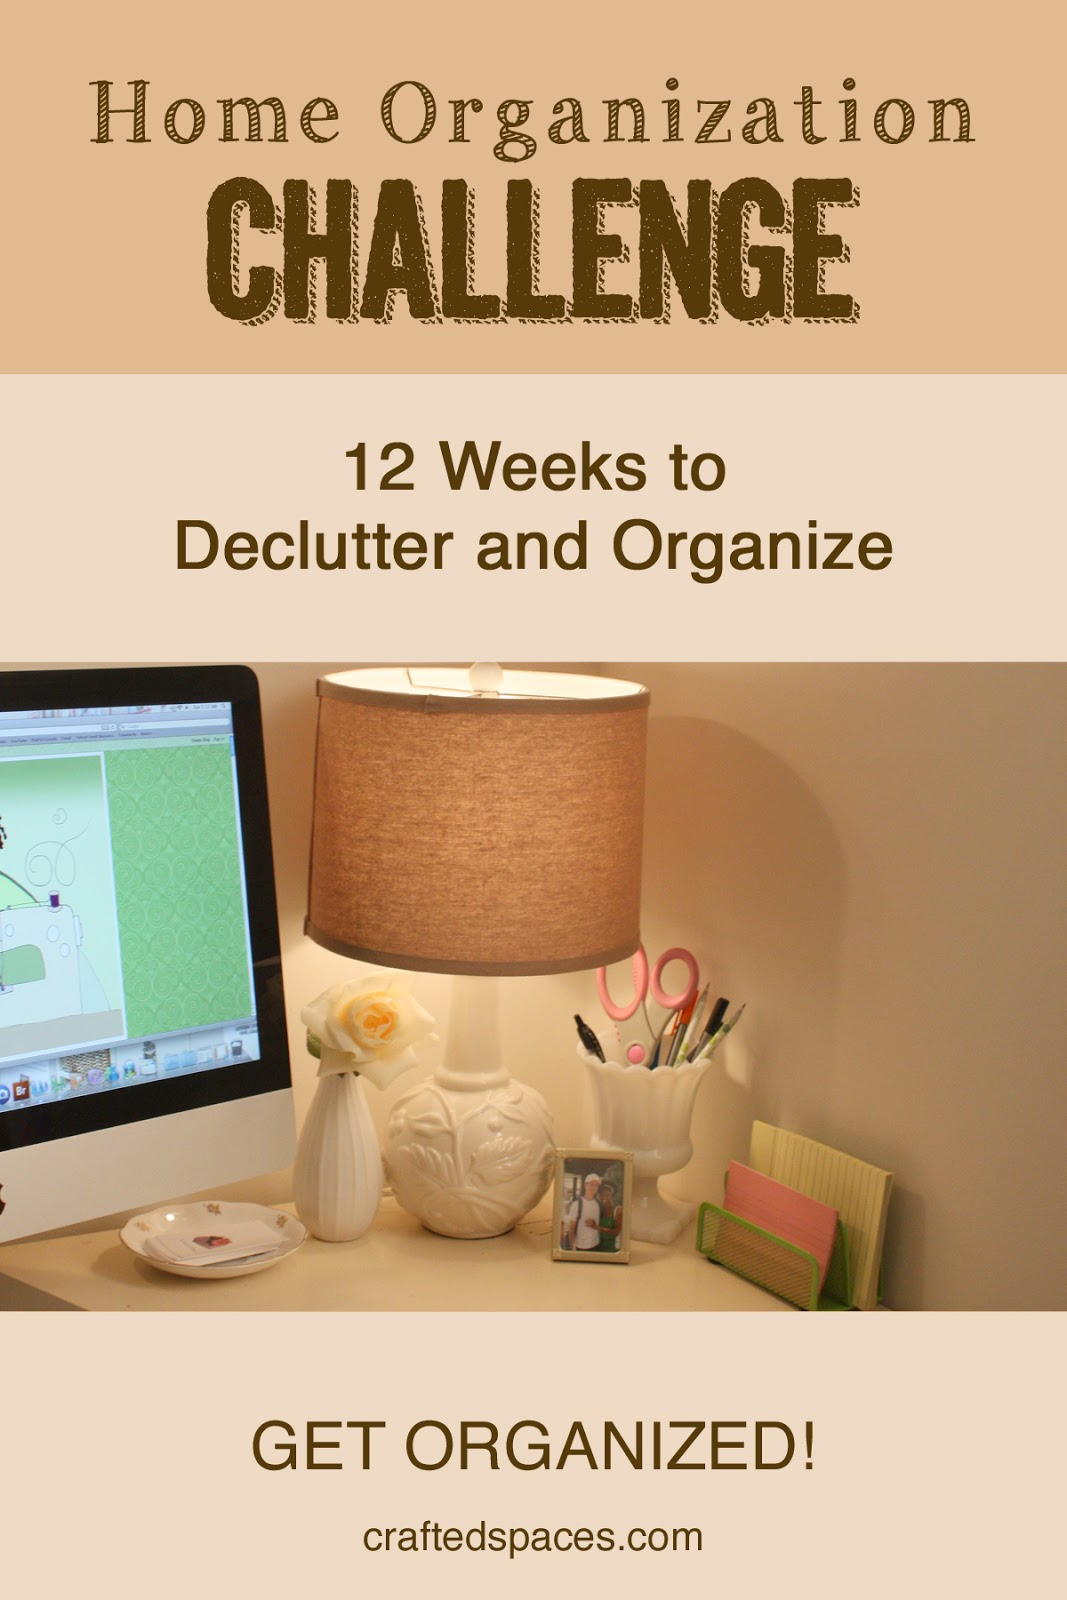 Organizing House: Crafted Spaces: Home Organization Challenge